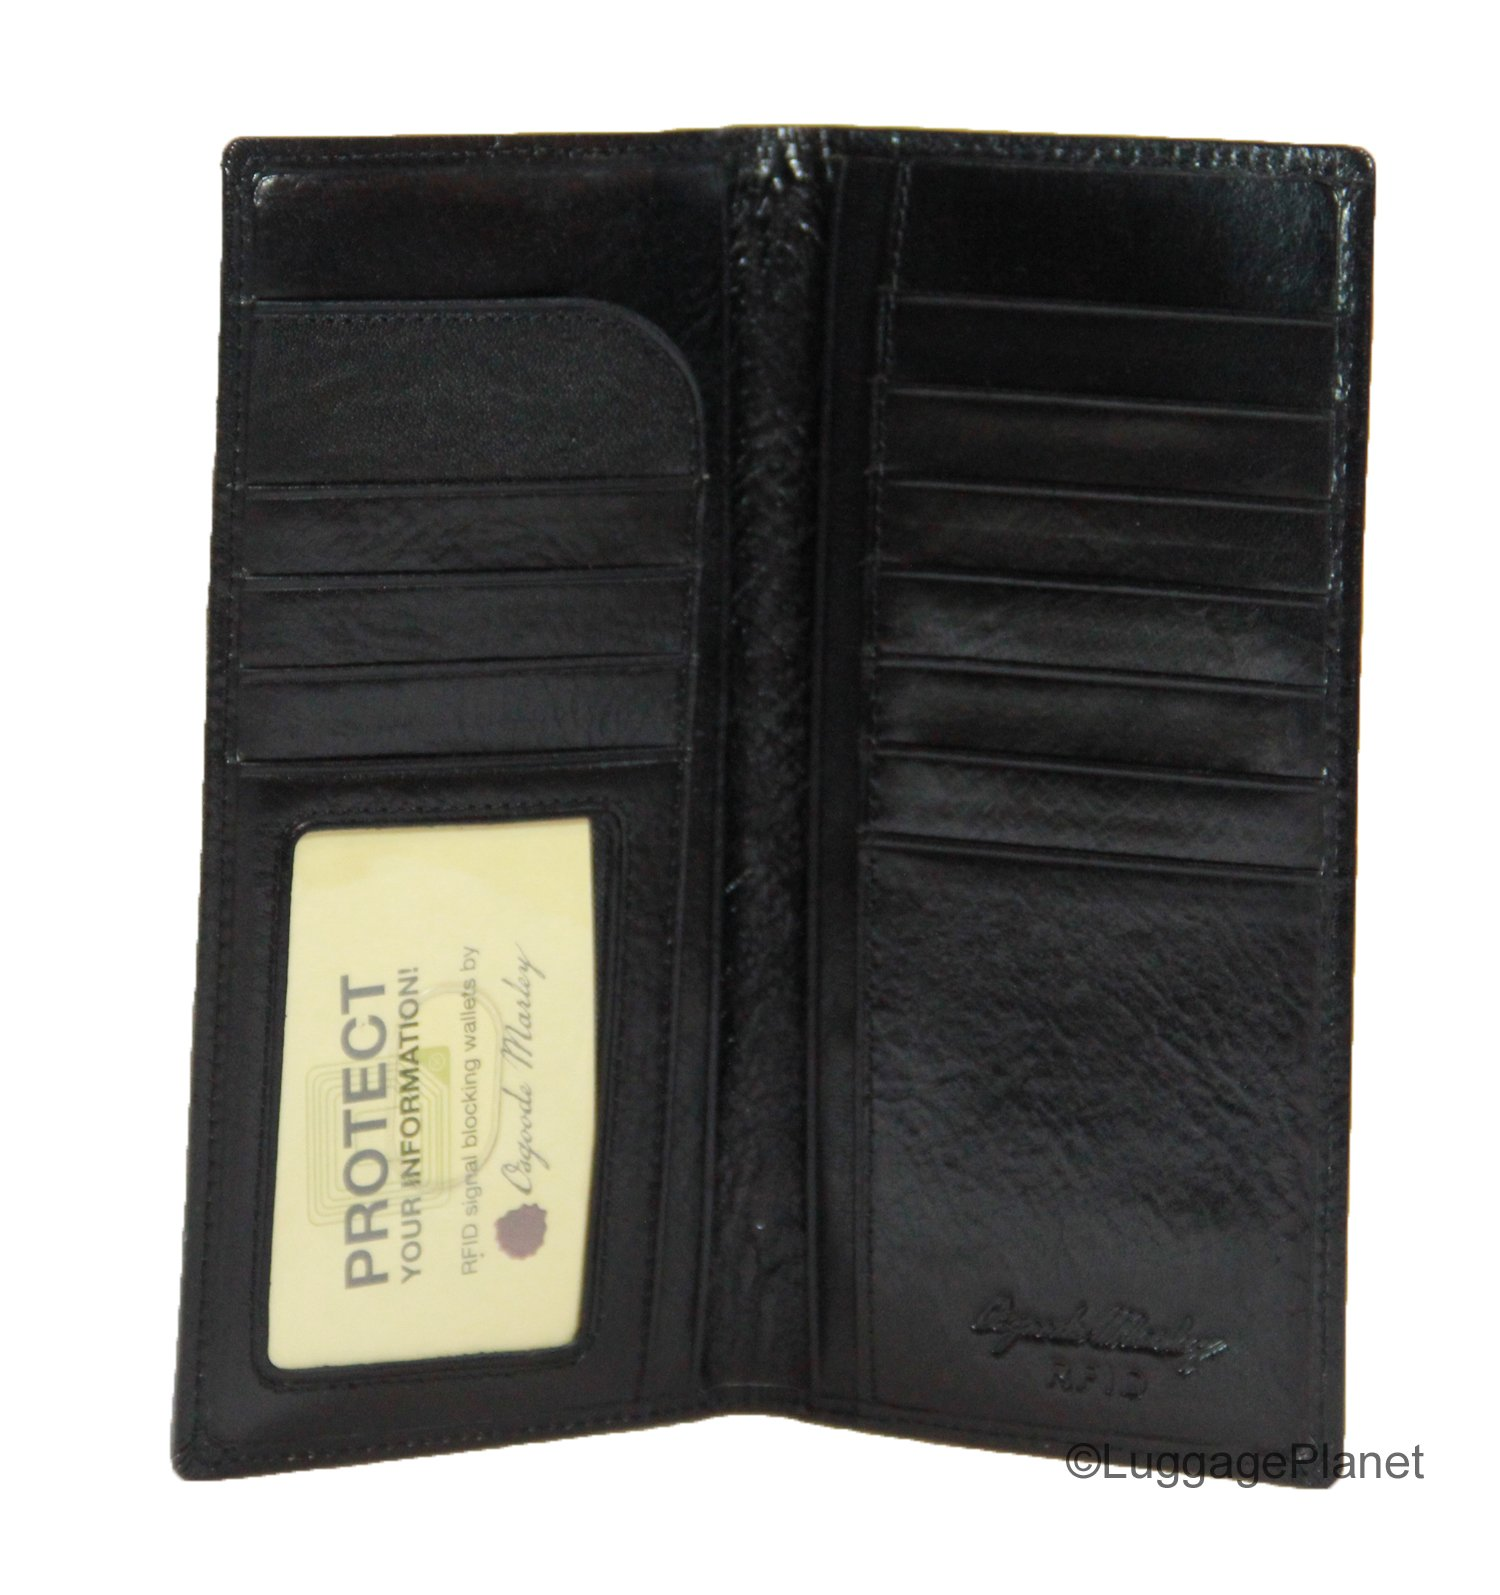 Osgoode Marley Sienna Collection Coat Pocket Mens RFID Leather Wallet (Black) by Osgoode Marley